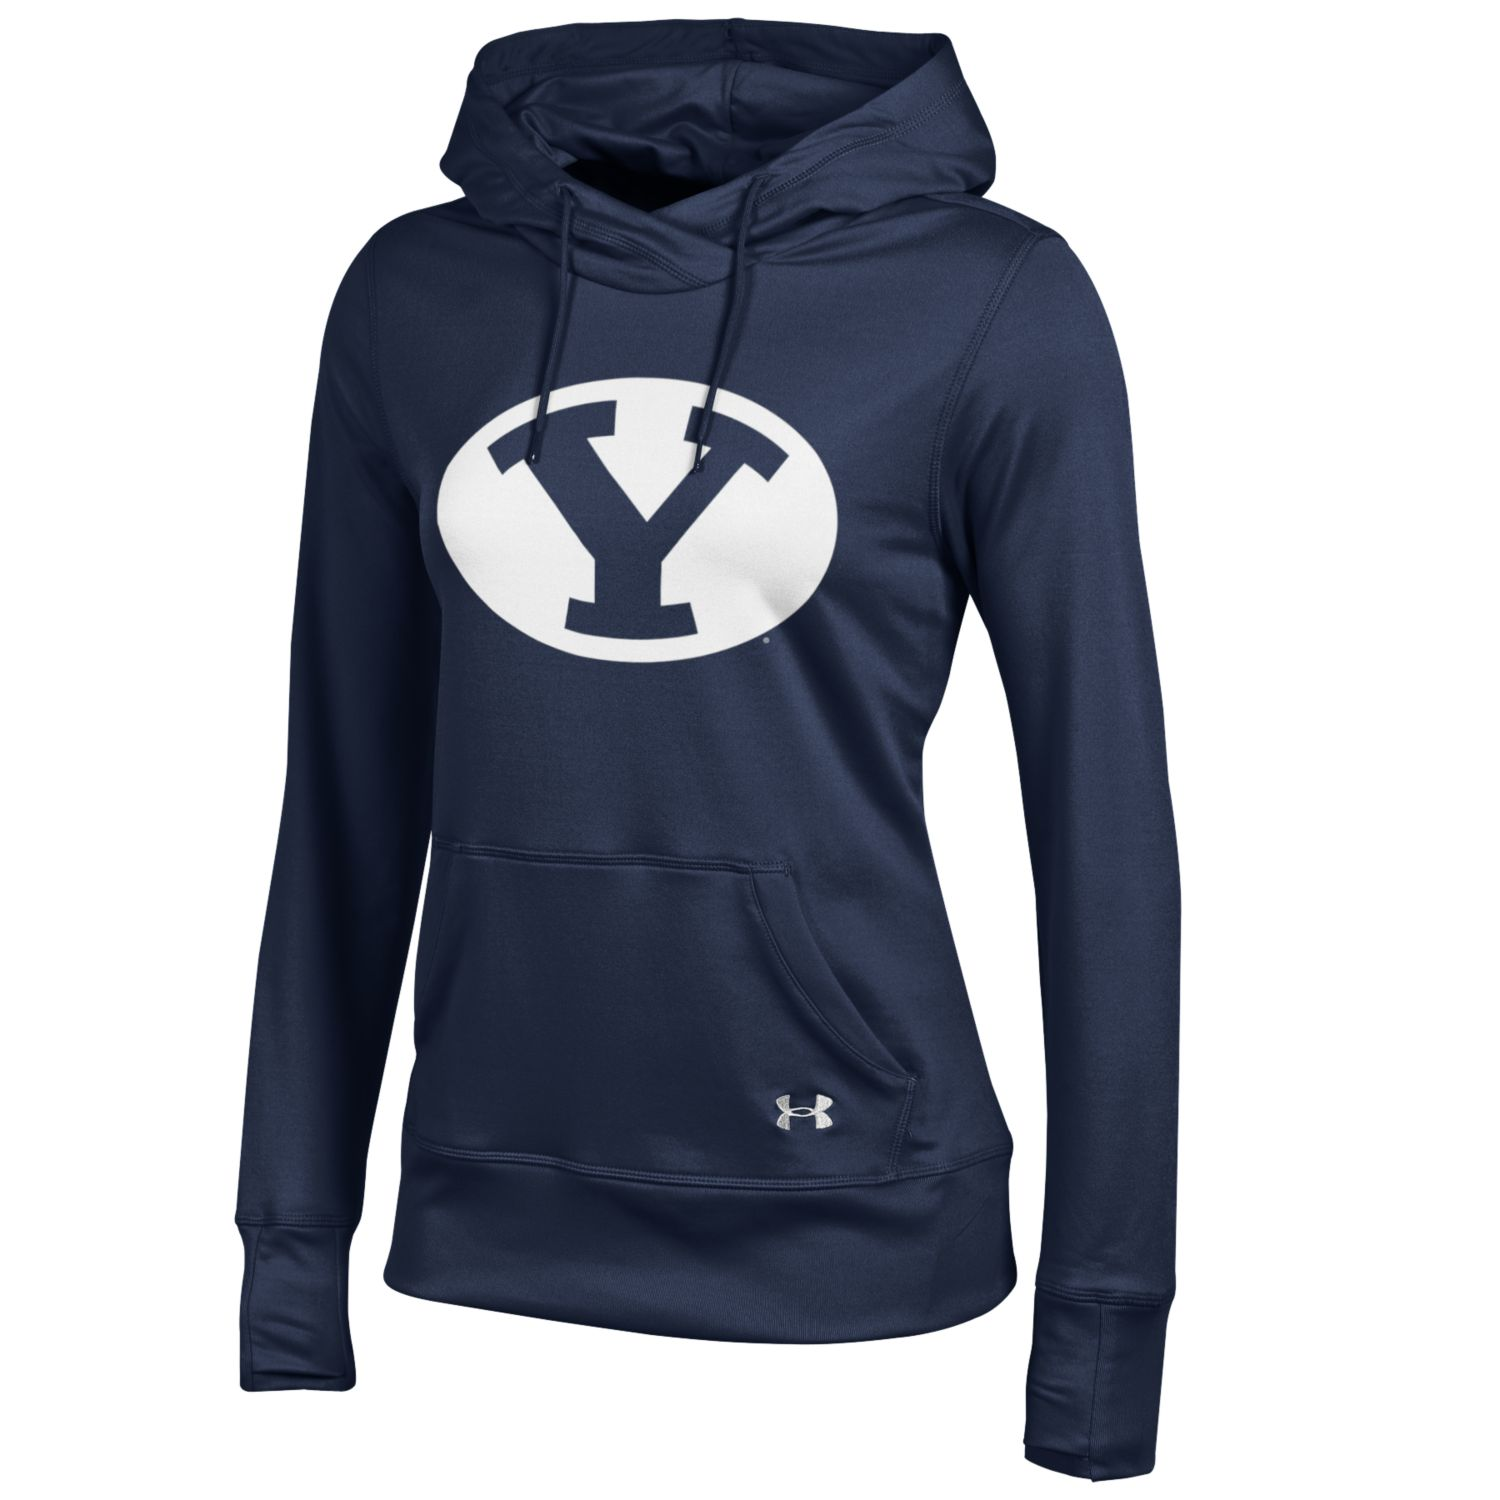 Under Armour BYU Cougars Womens Oval Y French Terry Pullover Hoodie (Navy)